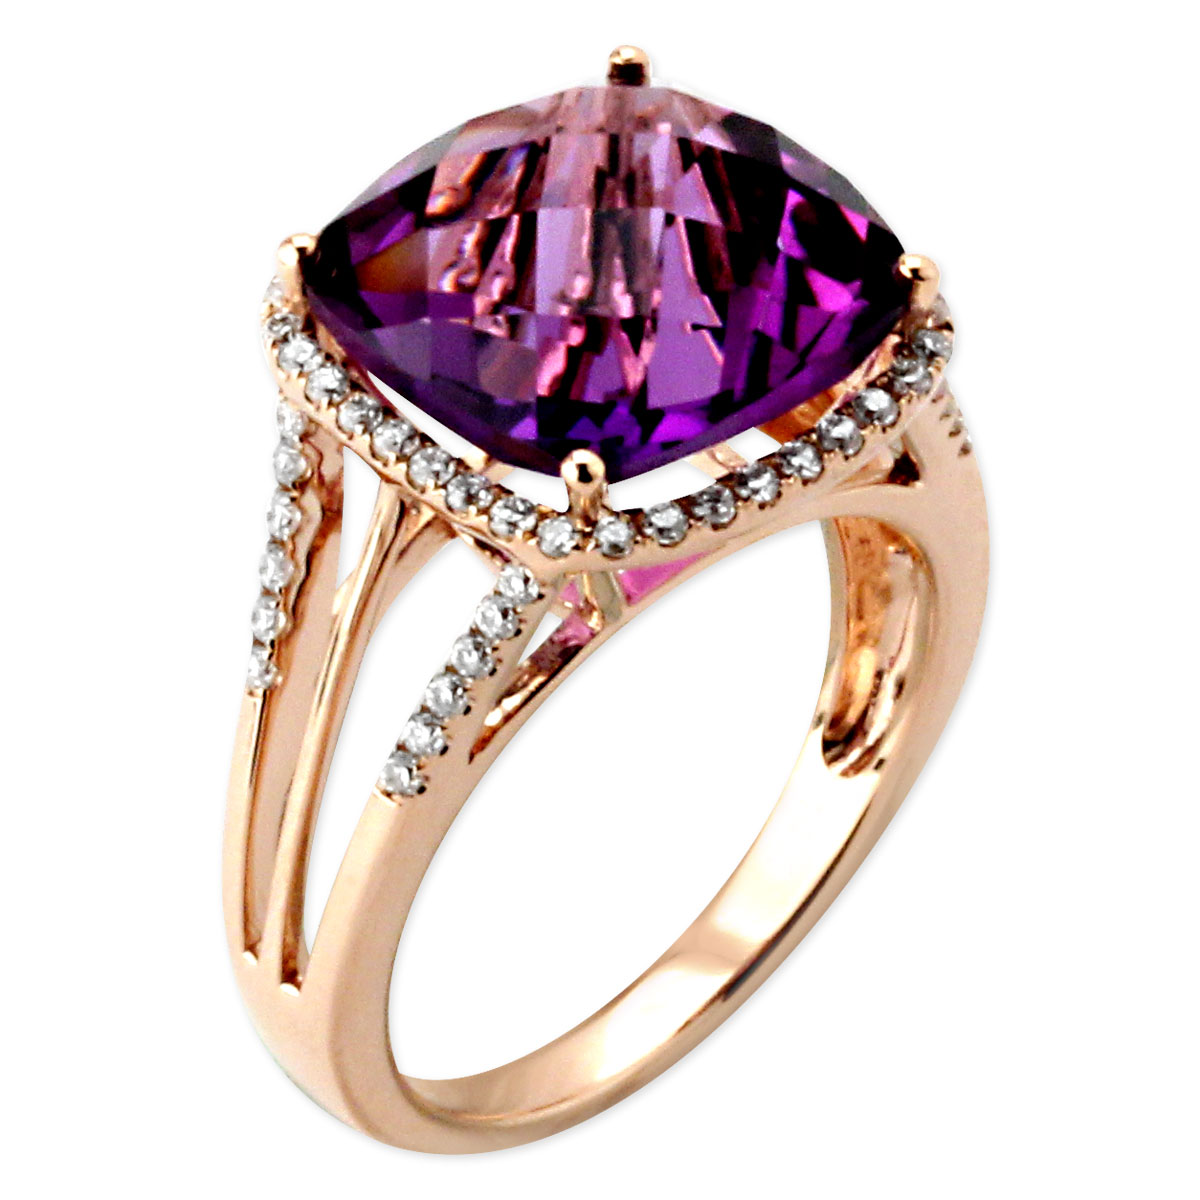 345643-Amethyst and Diamond Ring